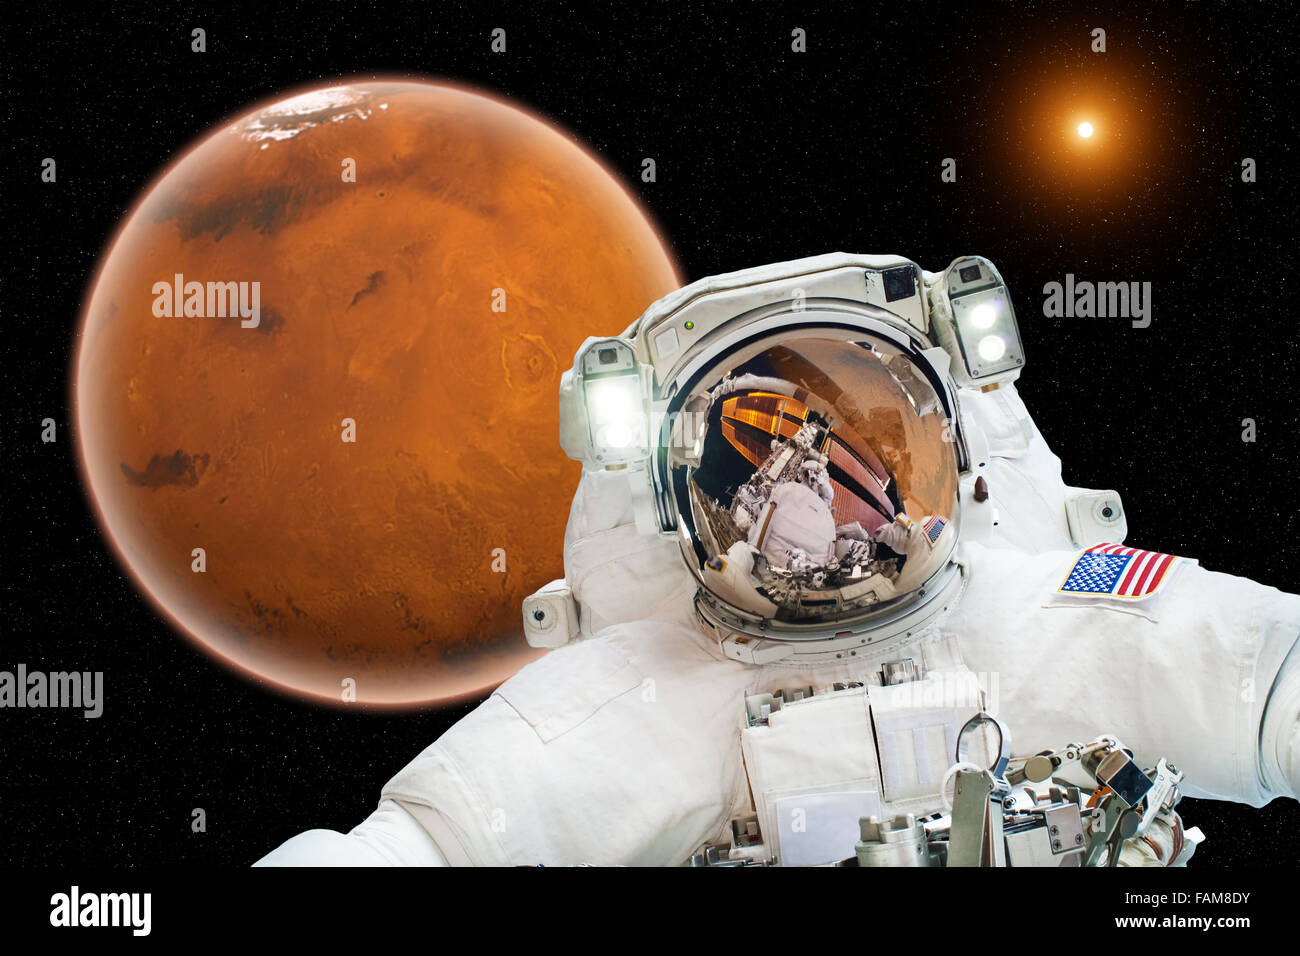 Astronaut in outer space on the Mars- elements of this image furnished by NASA - Stock Image